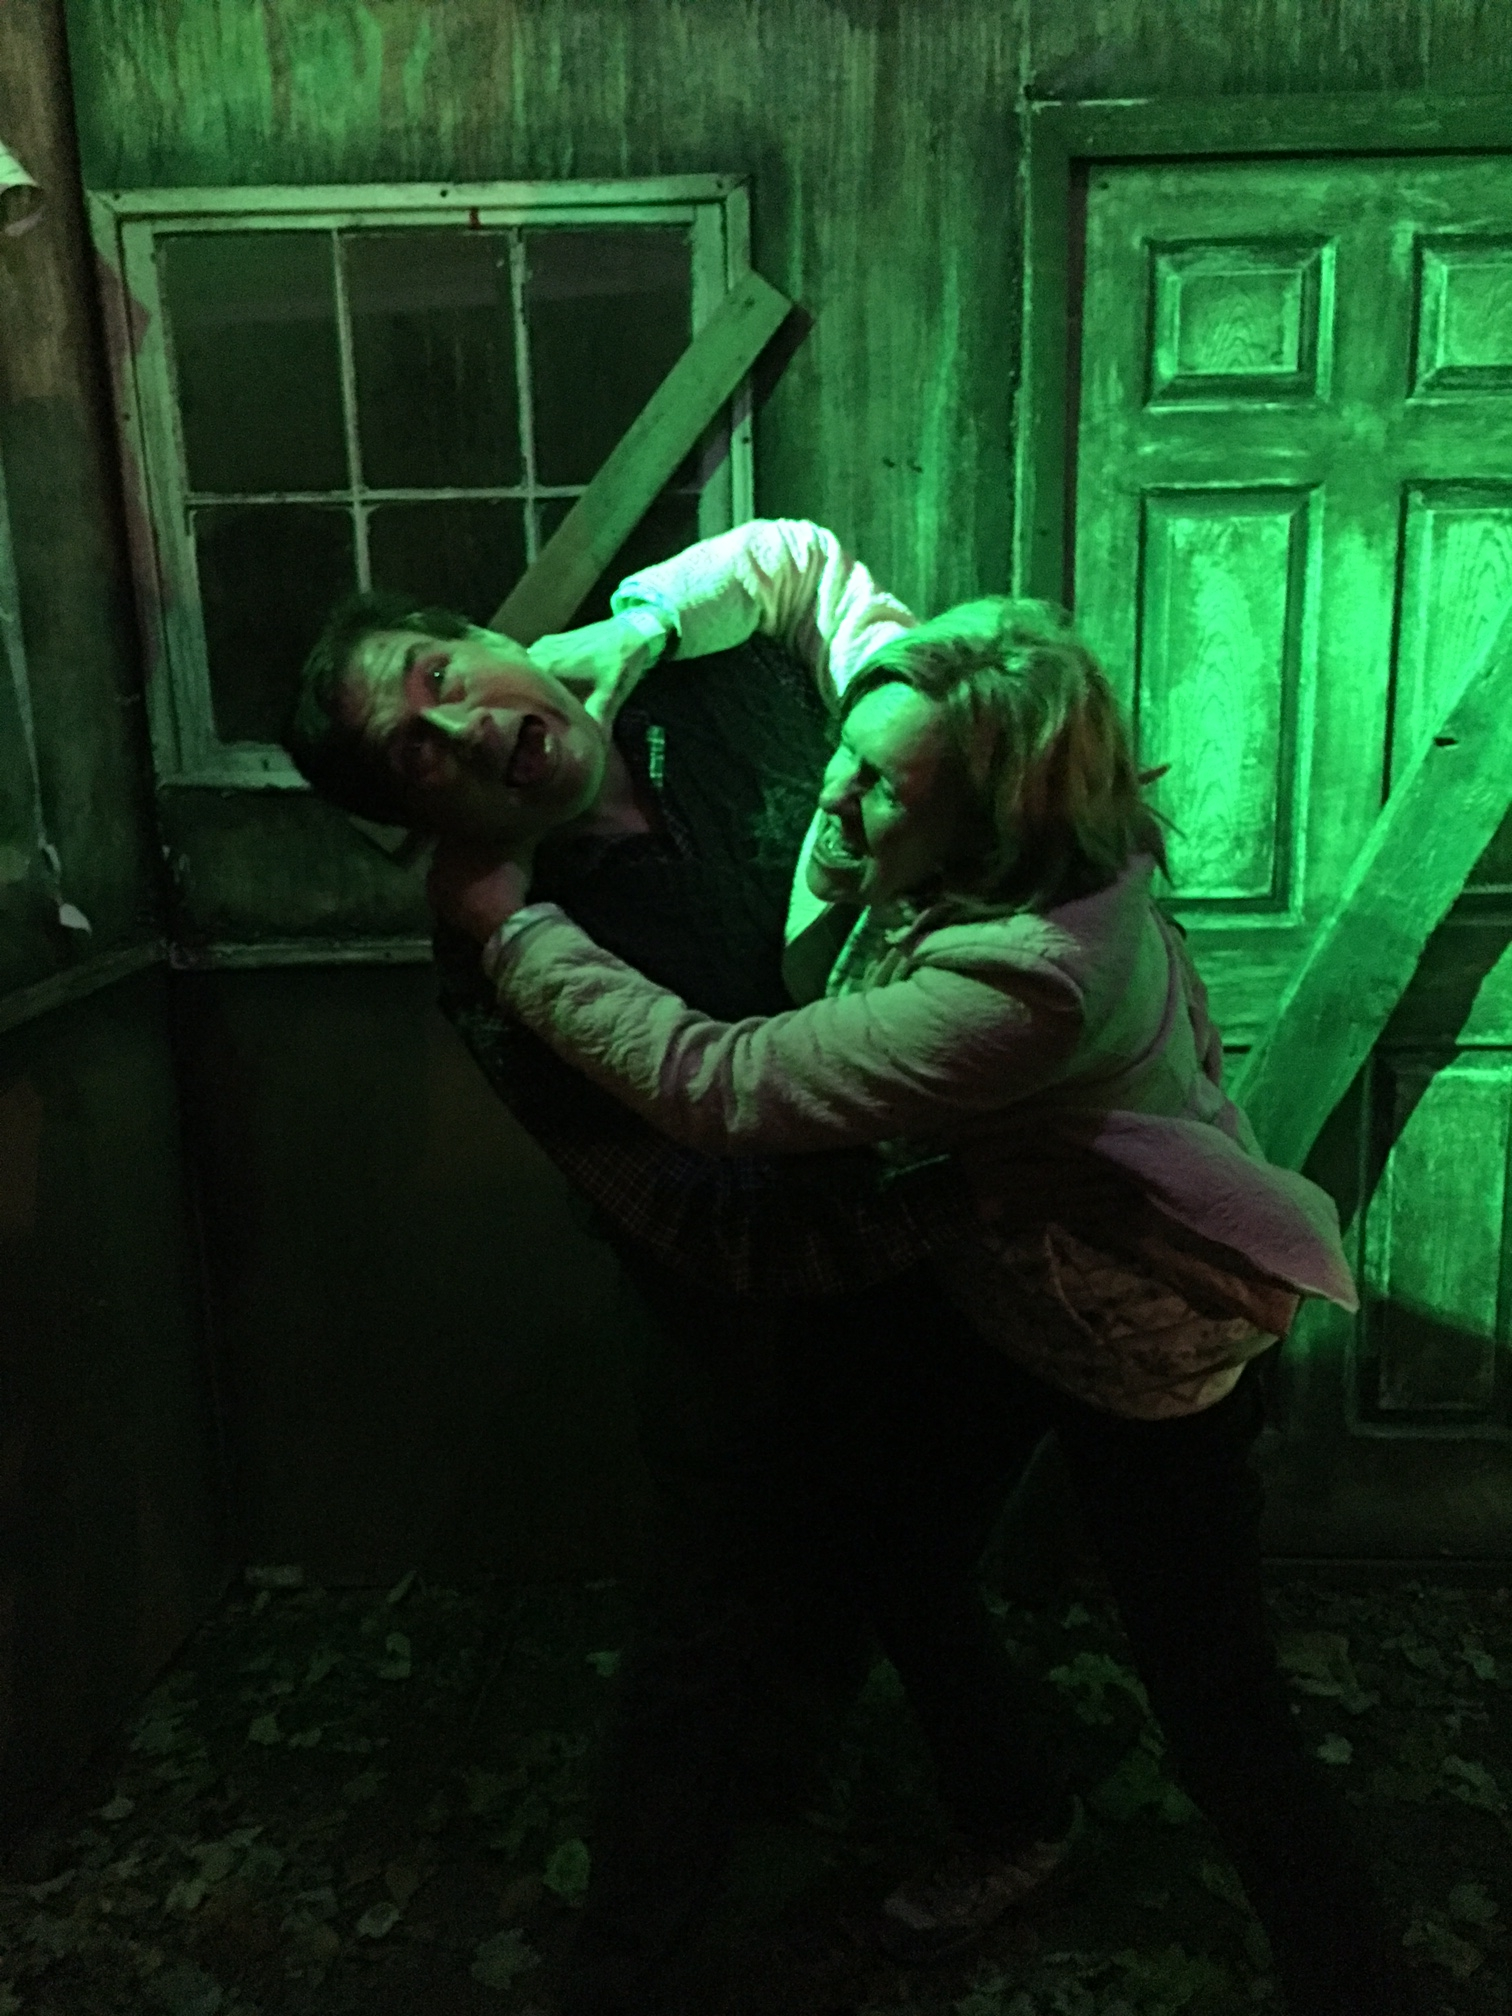 John and Lorraine at Frightfarms